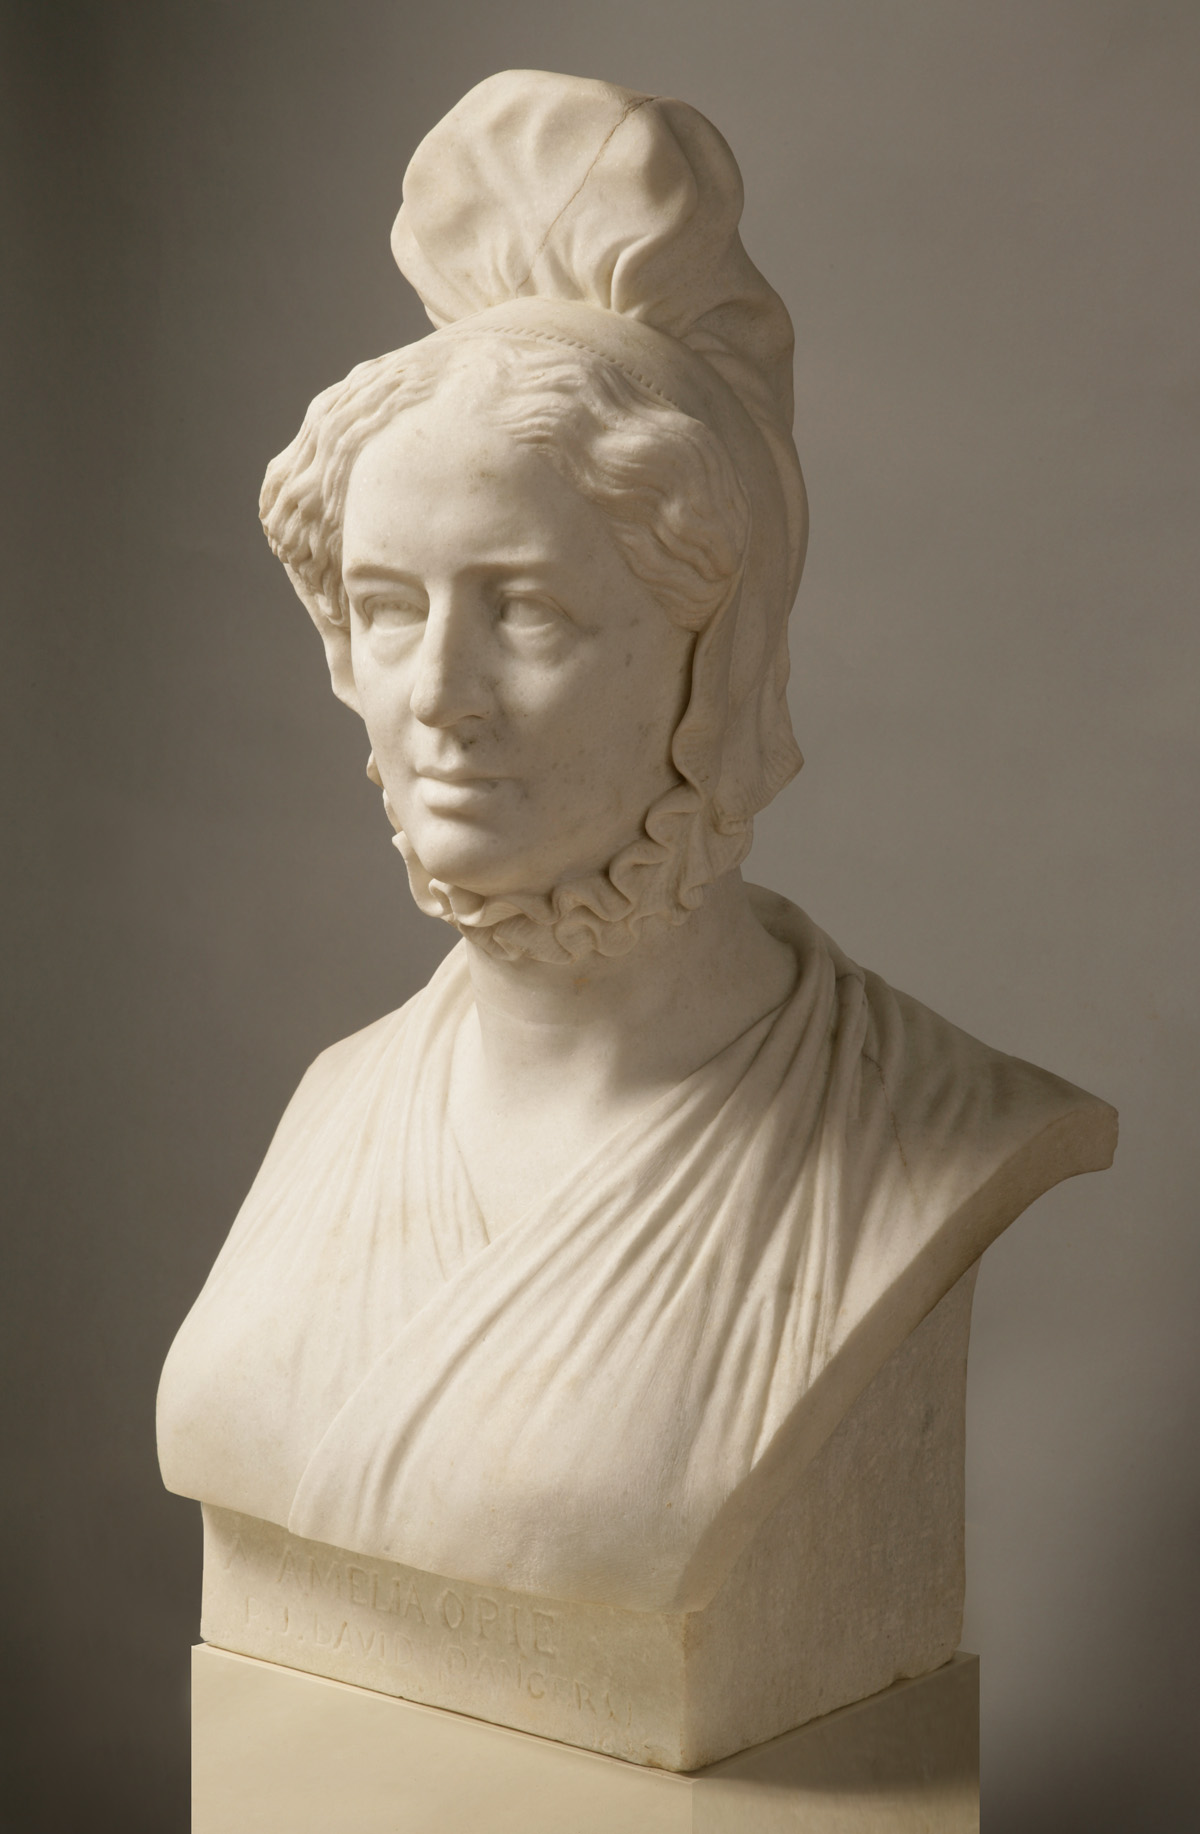 Amelia Opie bust by David d'Angers